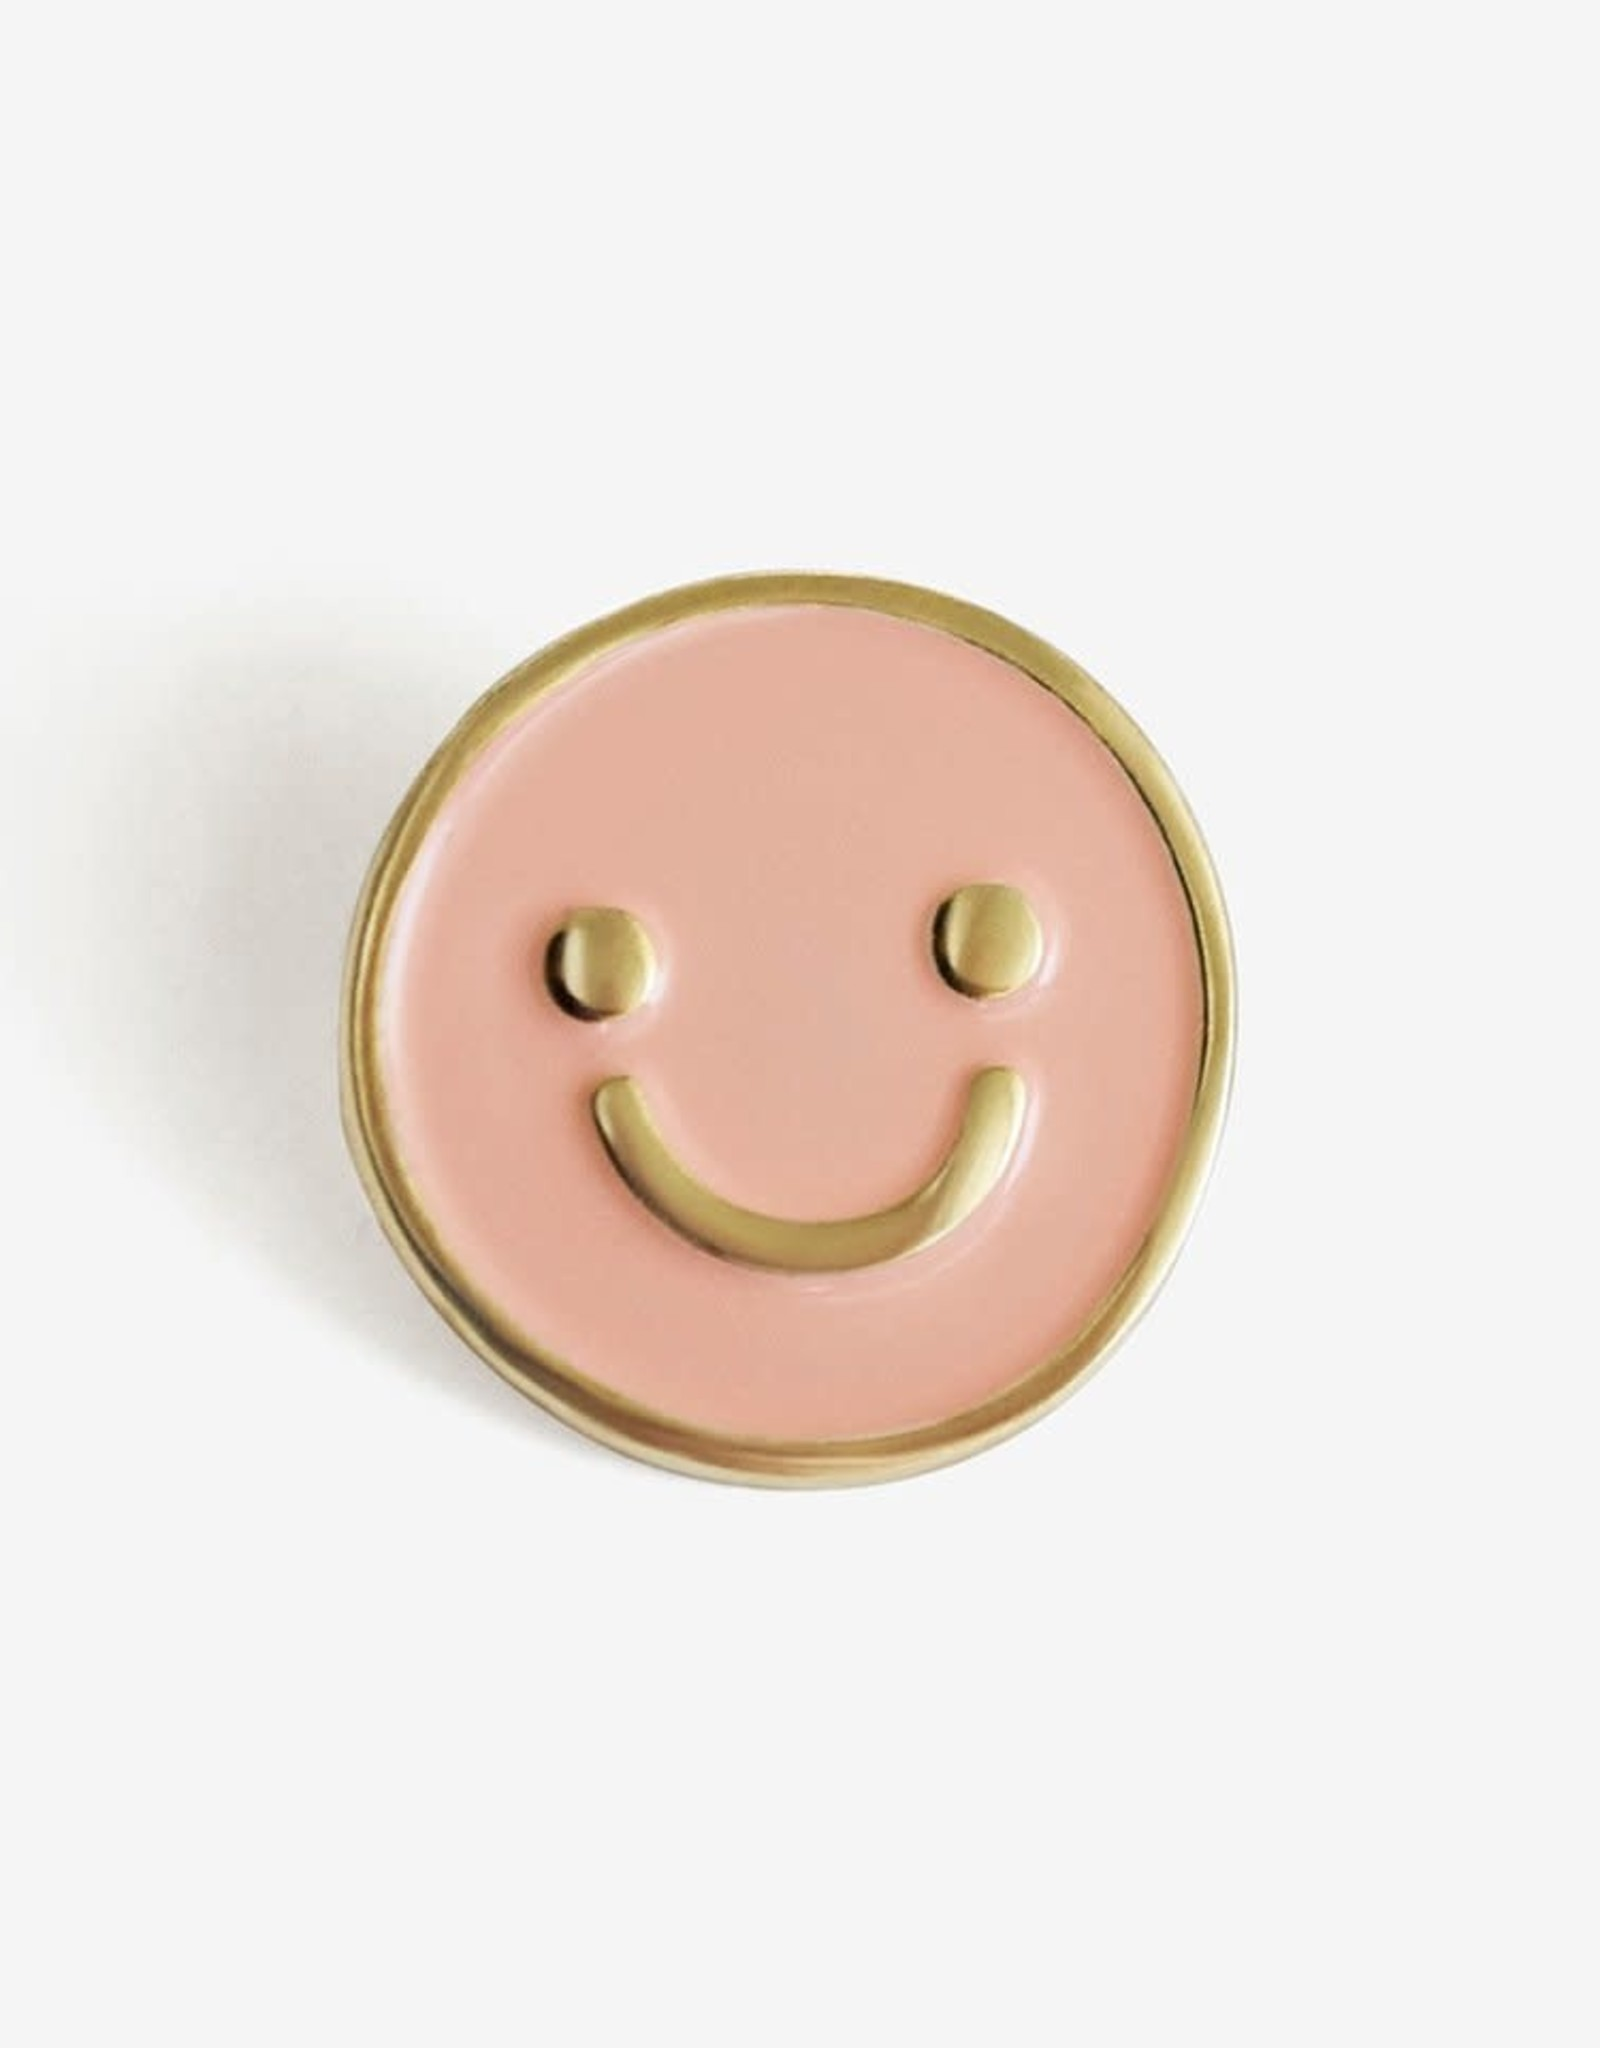 Happy Day Enamel Pin